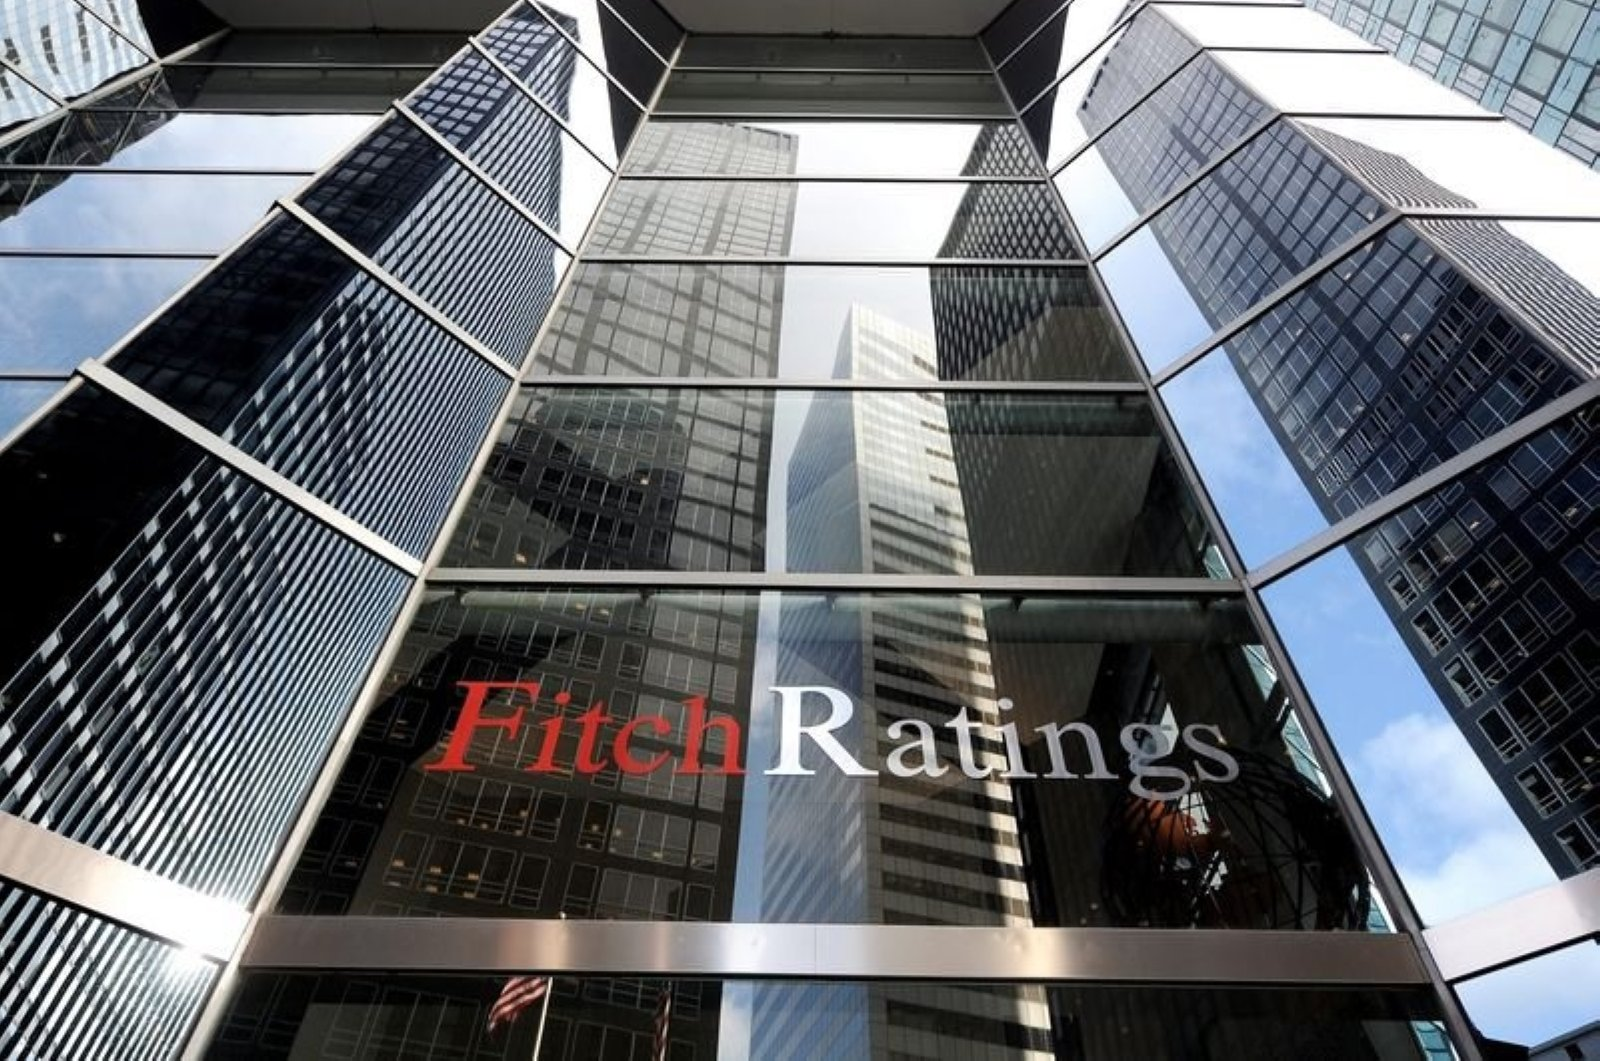 An exterior view of the offices at Fitch Ratings in New York City, Dec. 8, 2011. (EPA Photo)